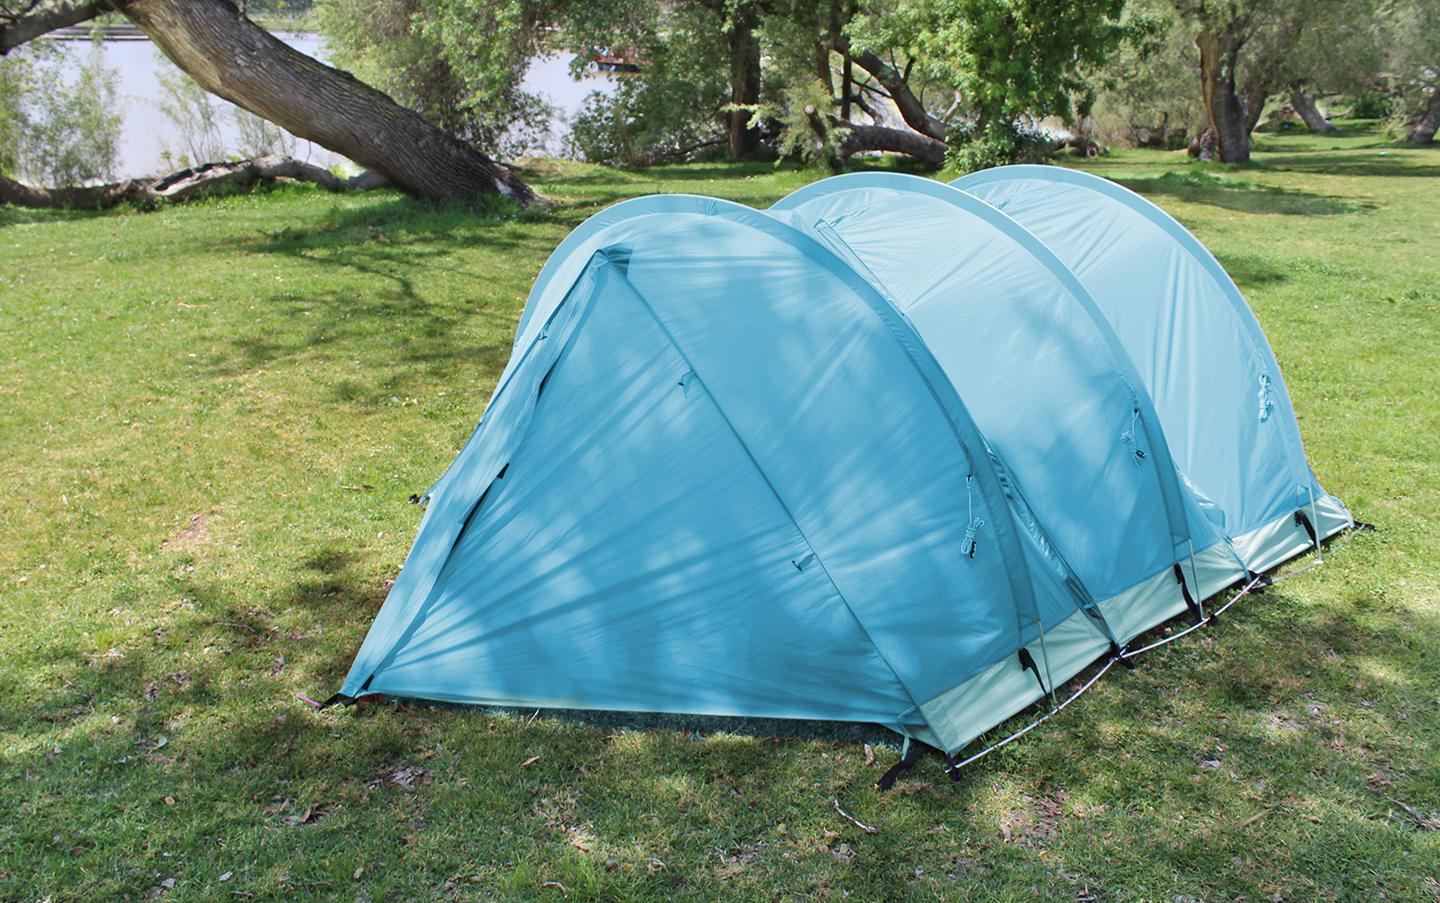 RhinoWolf tents link up and create a multi-person tent